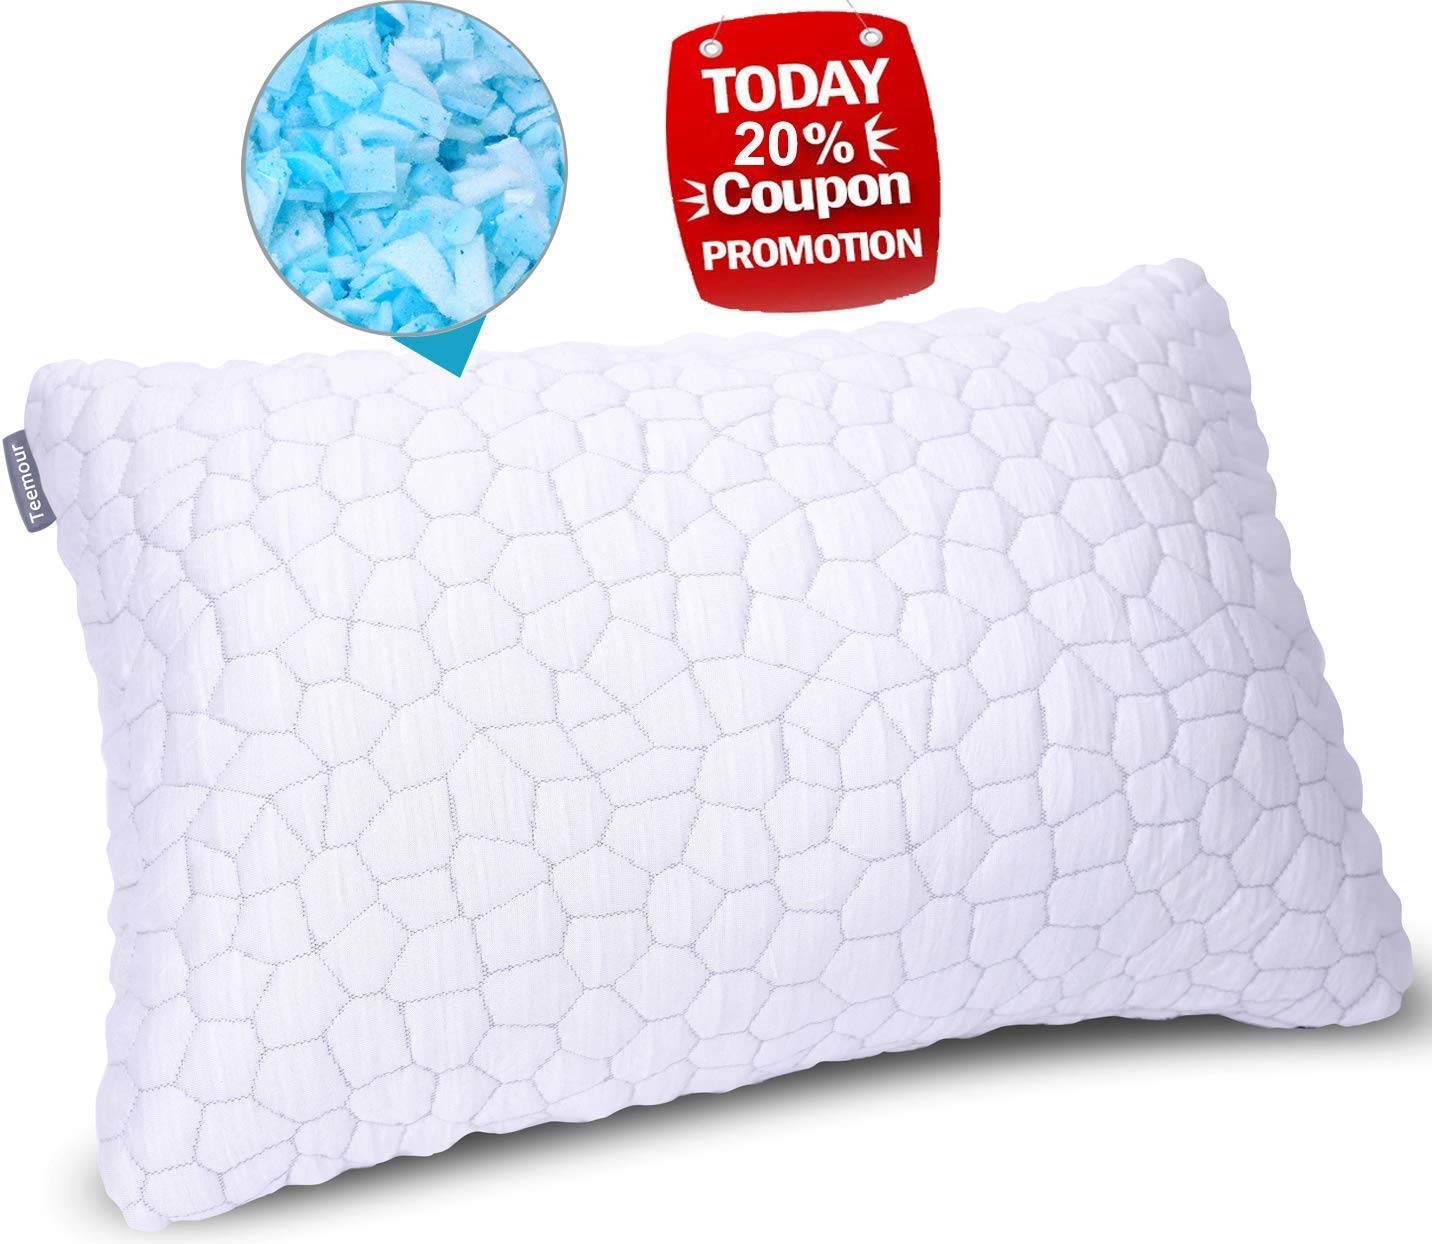 Bed Pillows for Sleeping Adjustable Gel Sheredded Memory Foam Pillow Cool Bed Pillow Adjustable Loft with Bamboo Pillow Cover Hypoallergenic Queen Sleeping Pillow (1-Pack)